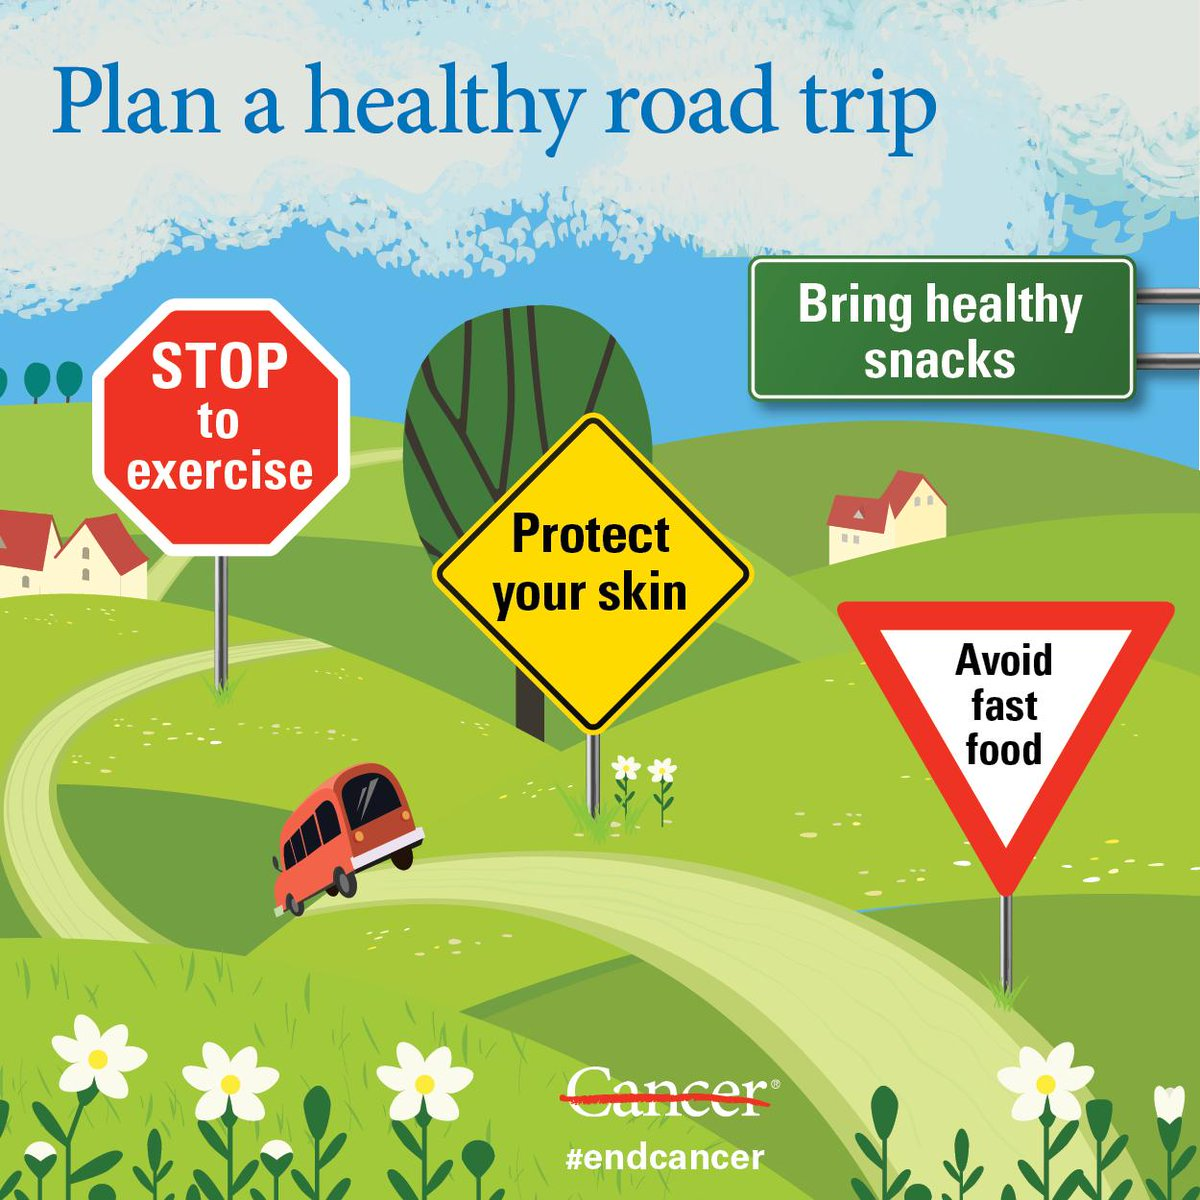 Heading on a road trip? Stay healthy and lower your #cancer risk with our tips for a healthy summer: http://bit.ly/2ZpKsso @FocusedonHealth #endcancer